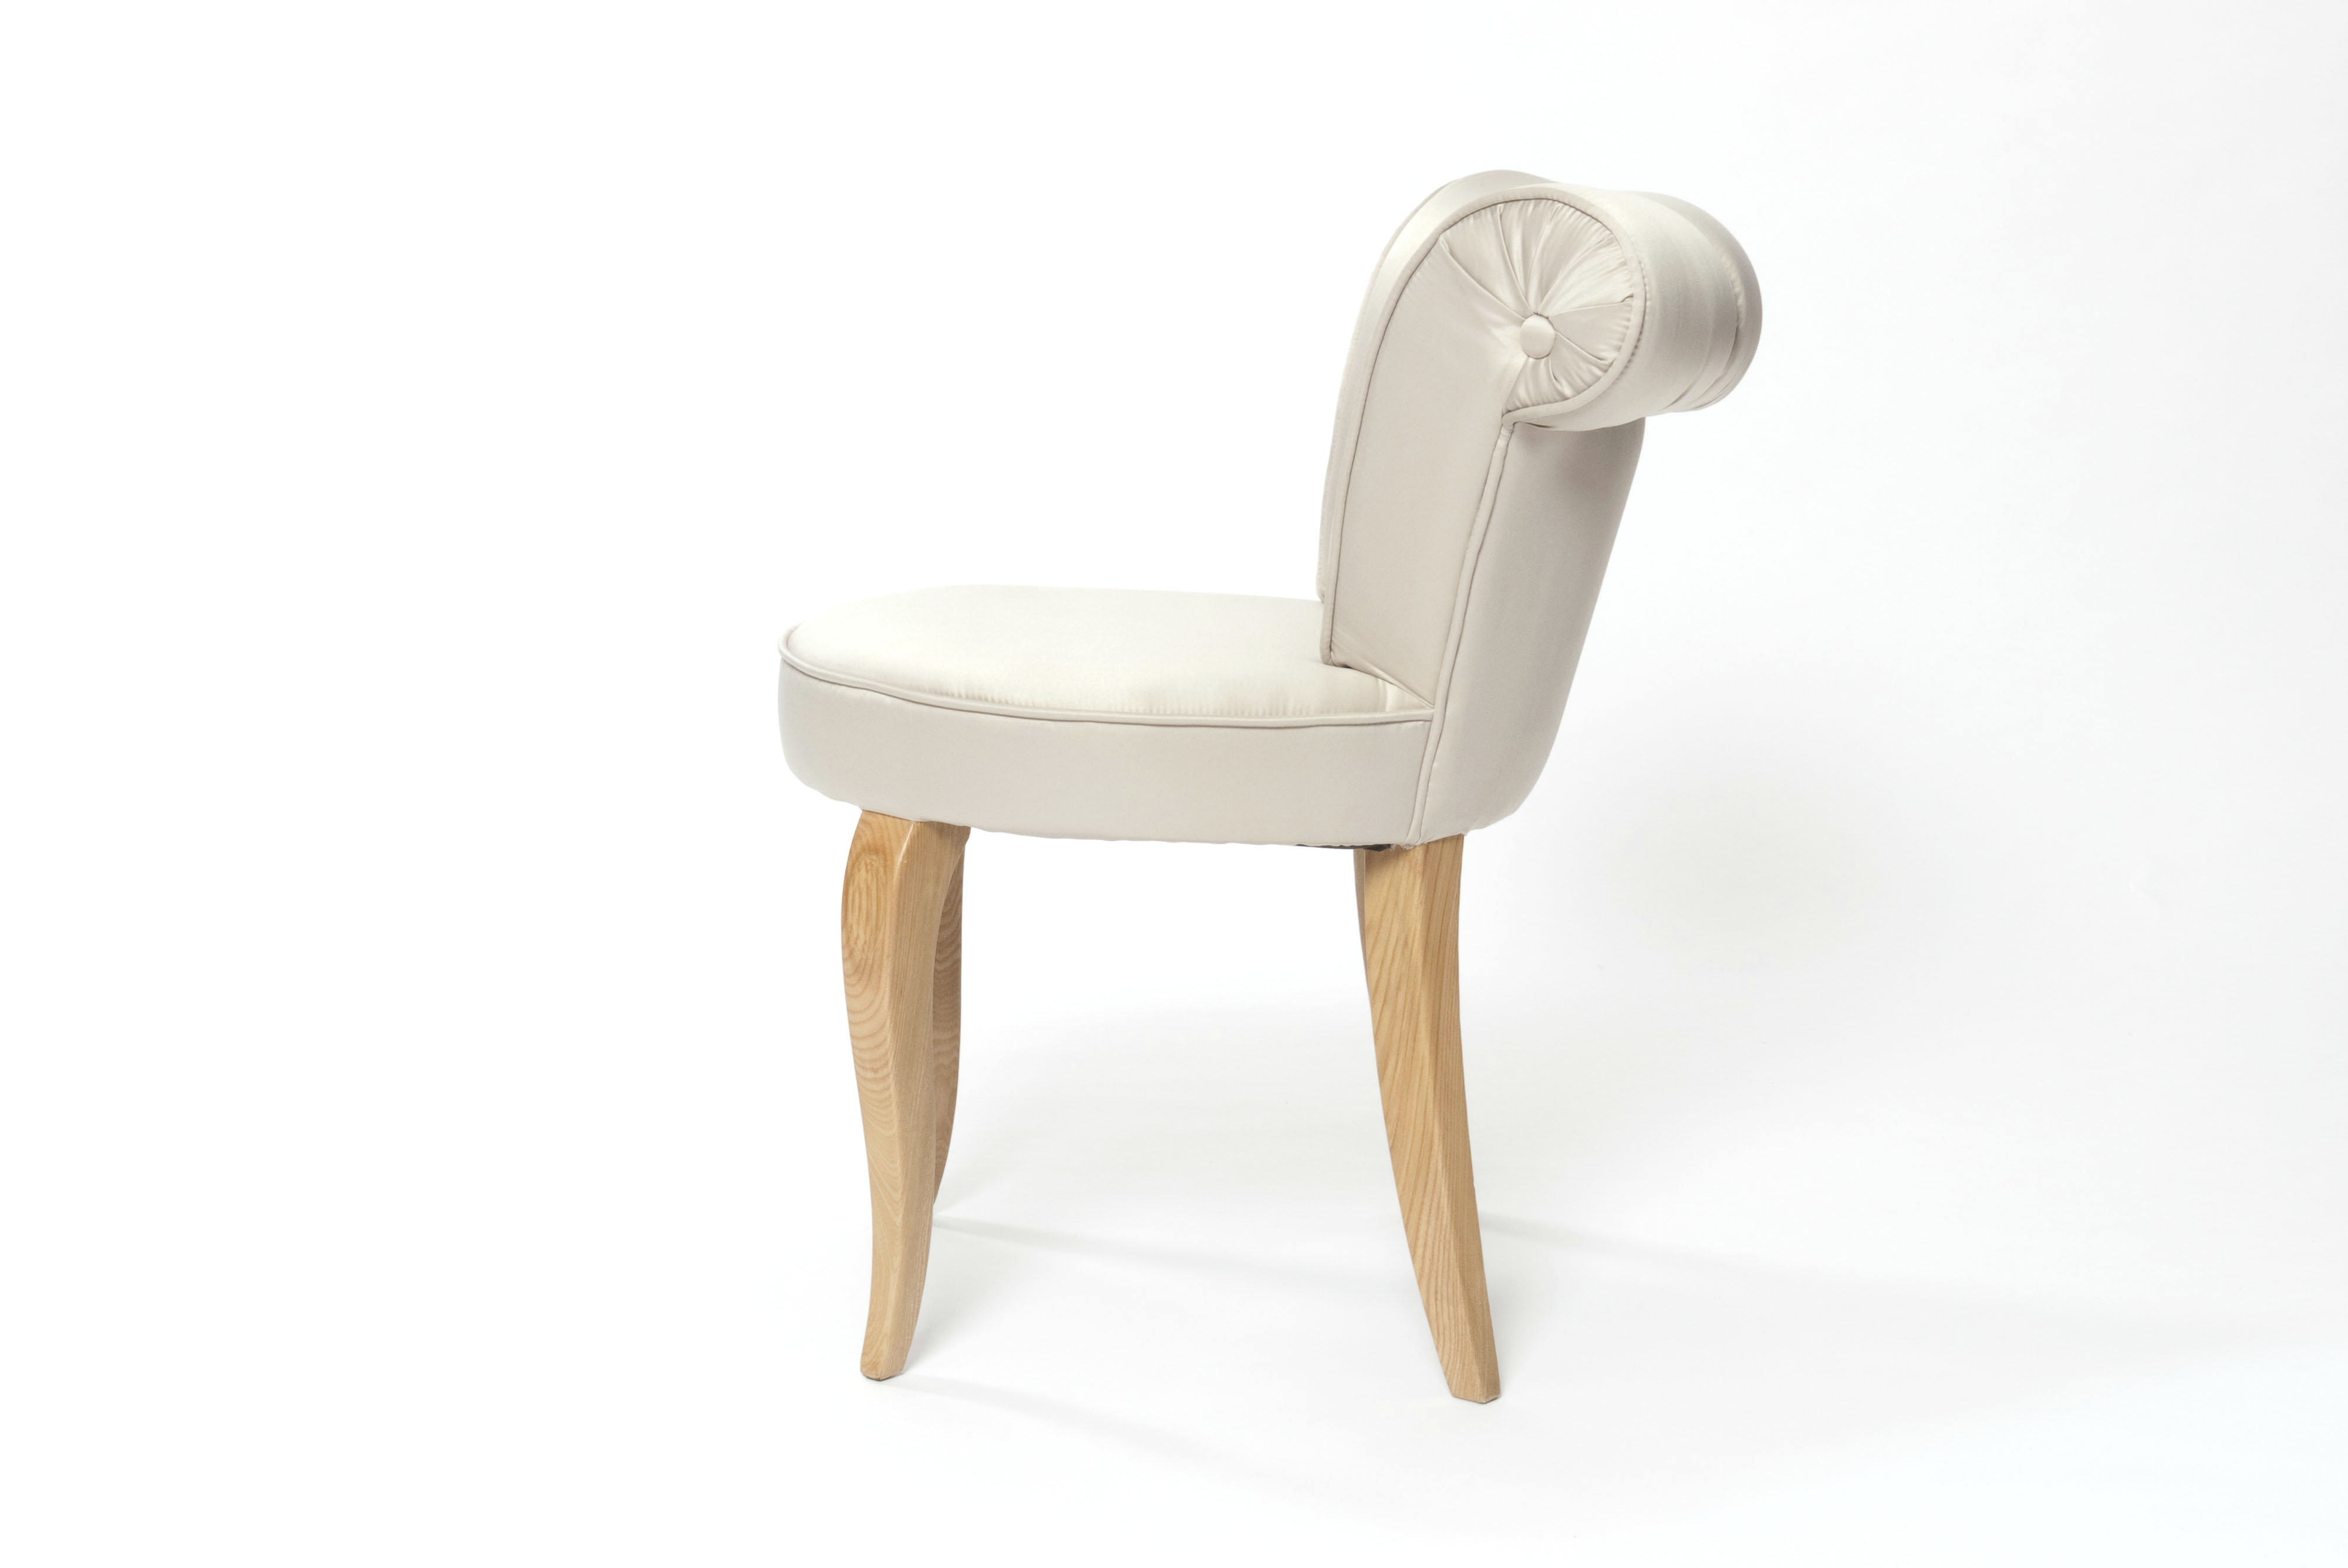 Modern occasional chair jack les trois gar ons for Modern occasional chairs